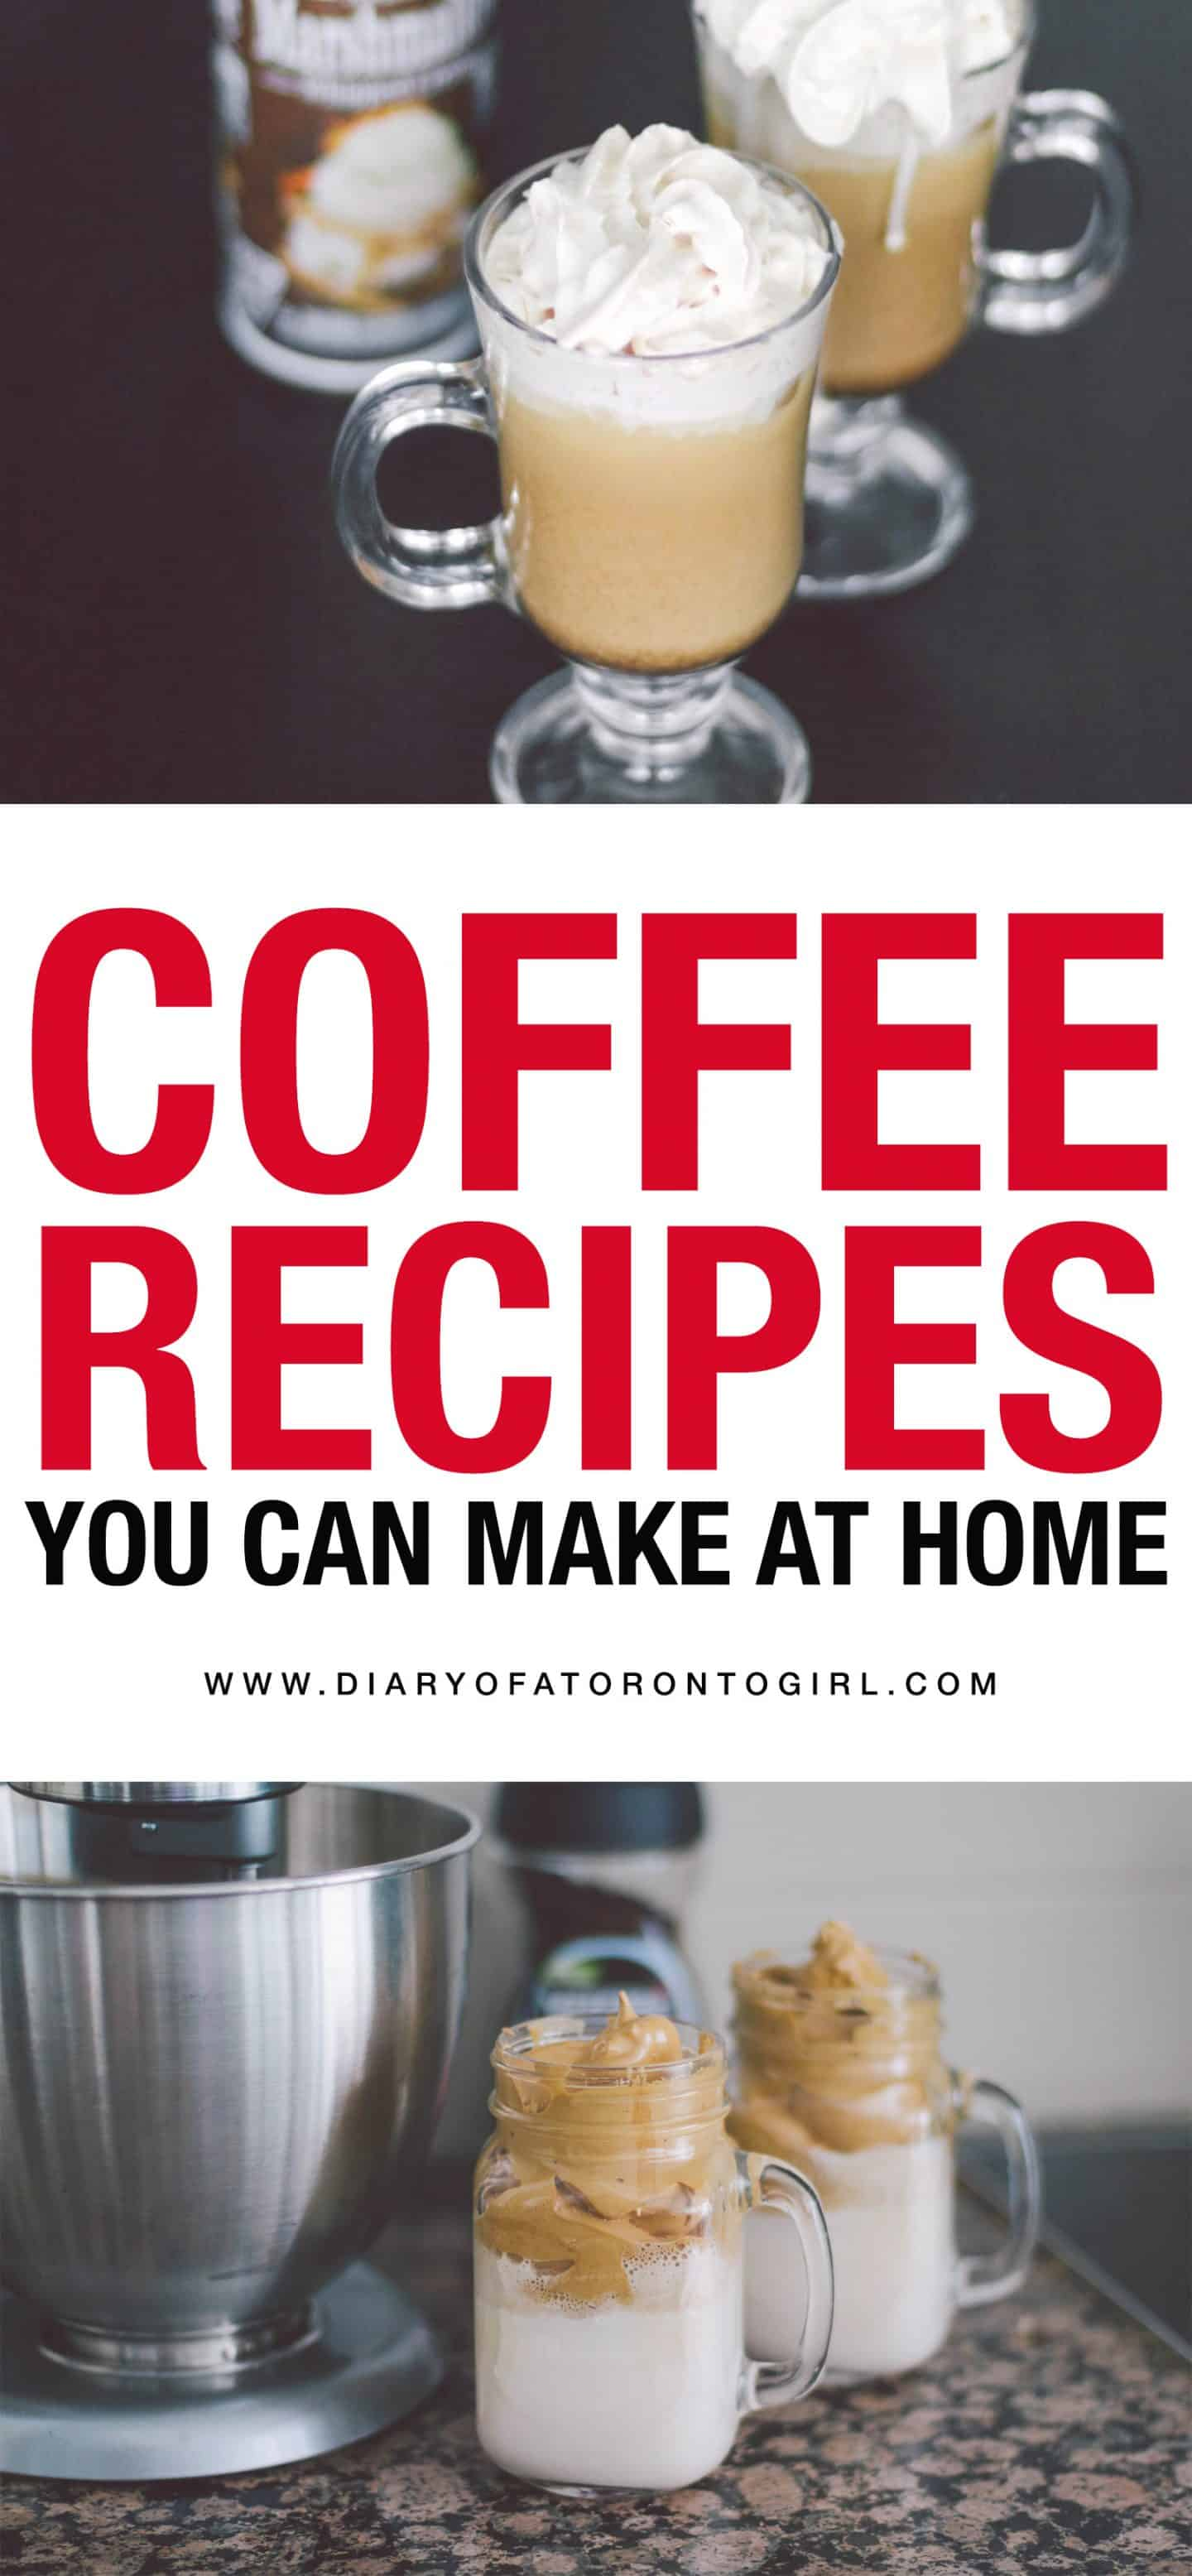 Looking for simple and easy coffee recipes to try at home? Here are a few fun and delicious coffee drink ideas you can try out yourself!